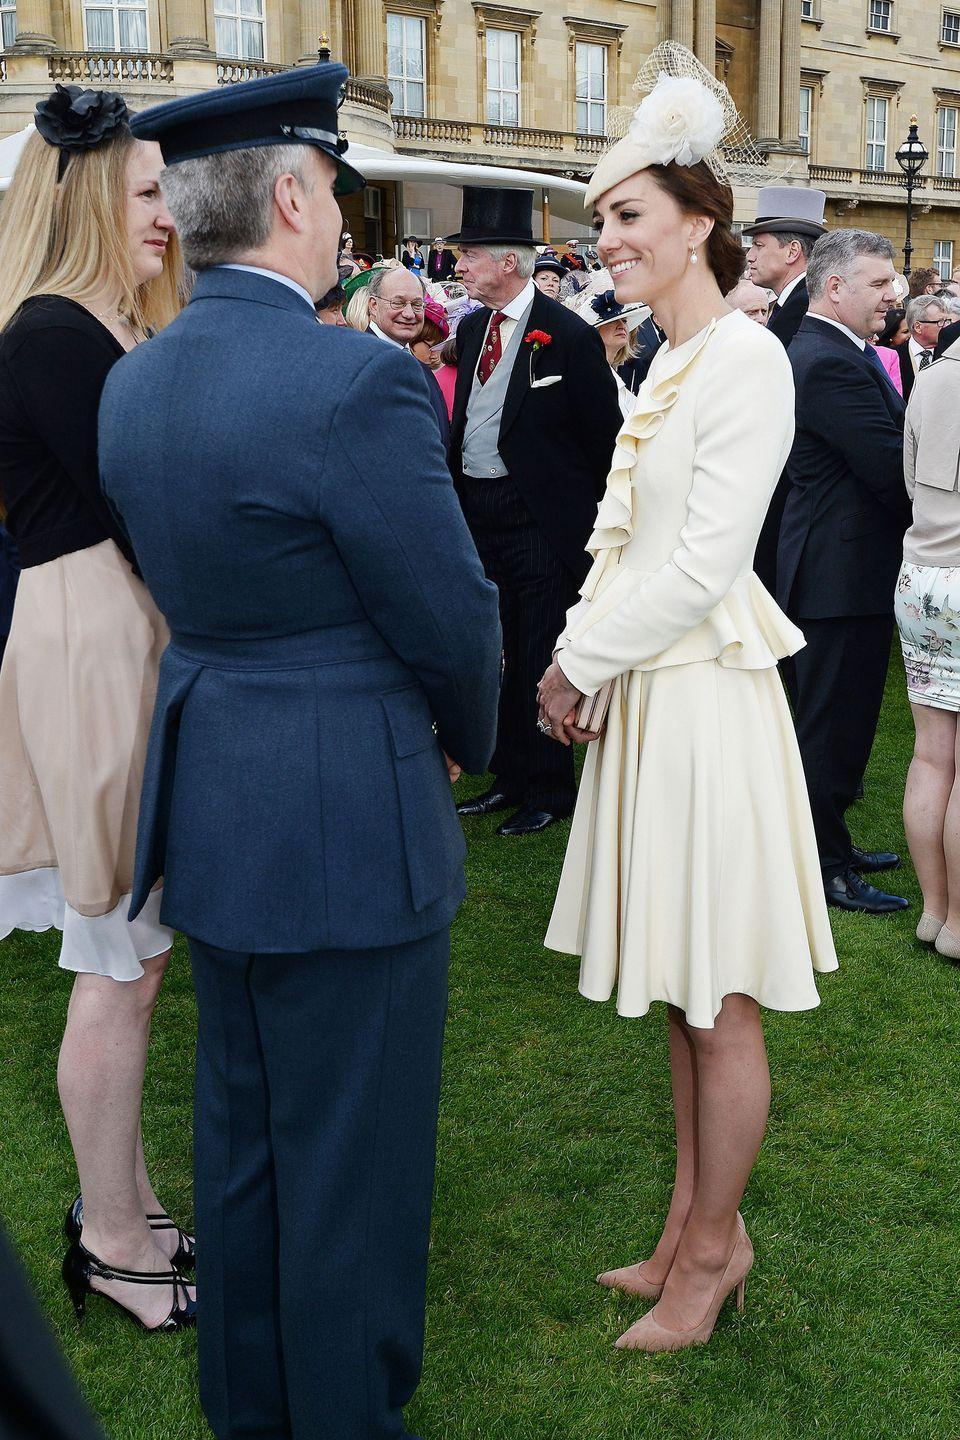 """<p>The Duchess dressed in all-white Alexander McQueen at a garden party at Buckingham Palace. It's the <a href=""""https://www.harpersbazaar.com/celebrity/latest/news/a1130/while-you-were-sleeping-102313/"""" rel=""""nofollow noopener"""" target=""""_blank"""" data-ylk=""""slk:same ensemble"""" class=""""link rapid-noclick-resp"""">same ensemble</a> she wore for Prince George's christening in 2013—cream-colored separates, hat and all.</p>"""